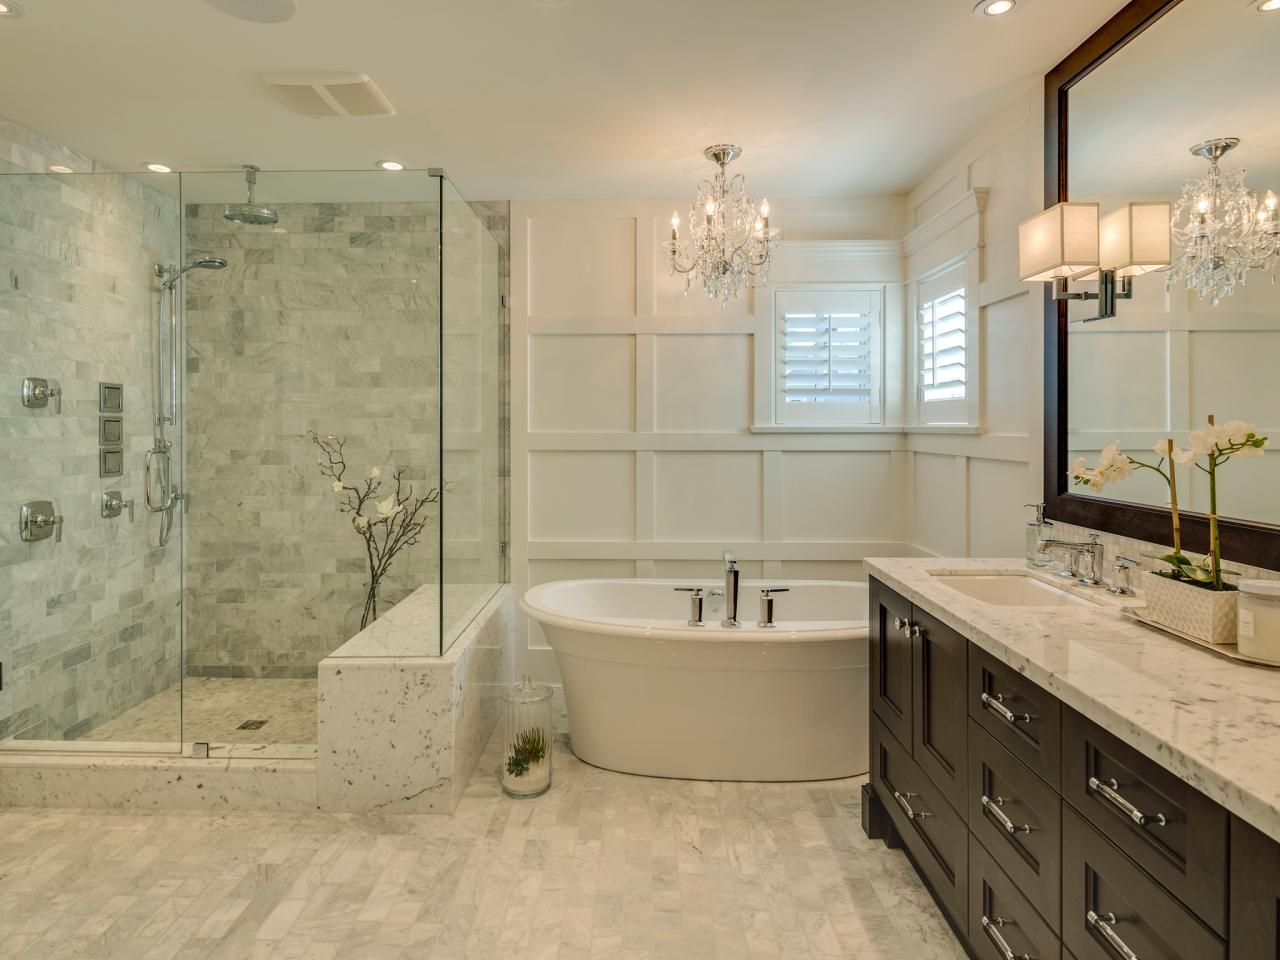 Splurge Or Save 16 Gorgeous Bath Updates For Any Budget Bathroom Remodel Designs Bathroom Floor Plans Bathroom Trends